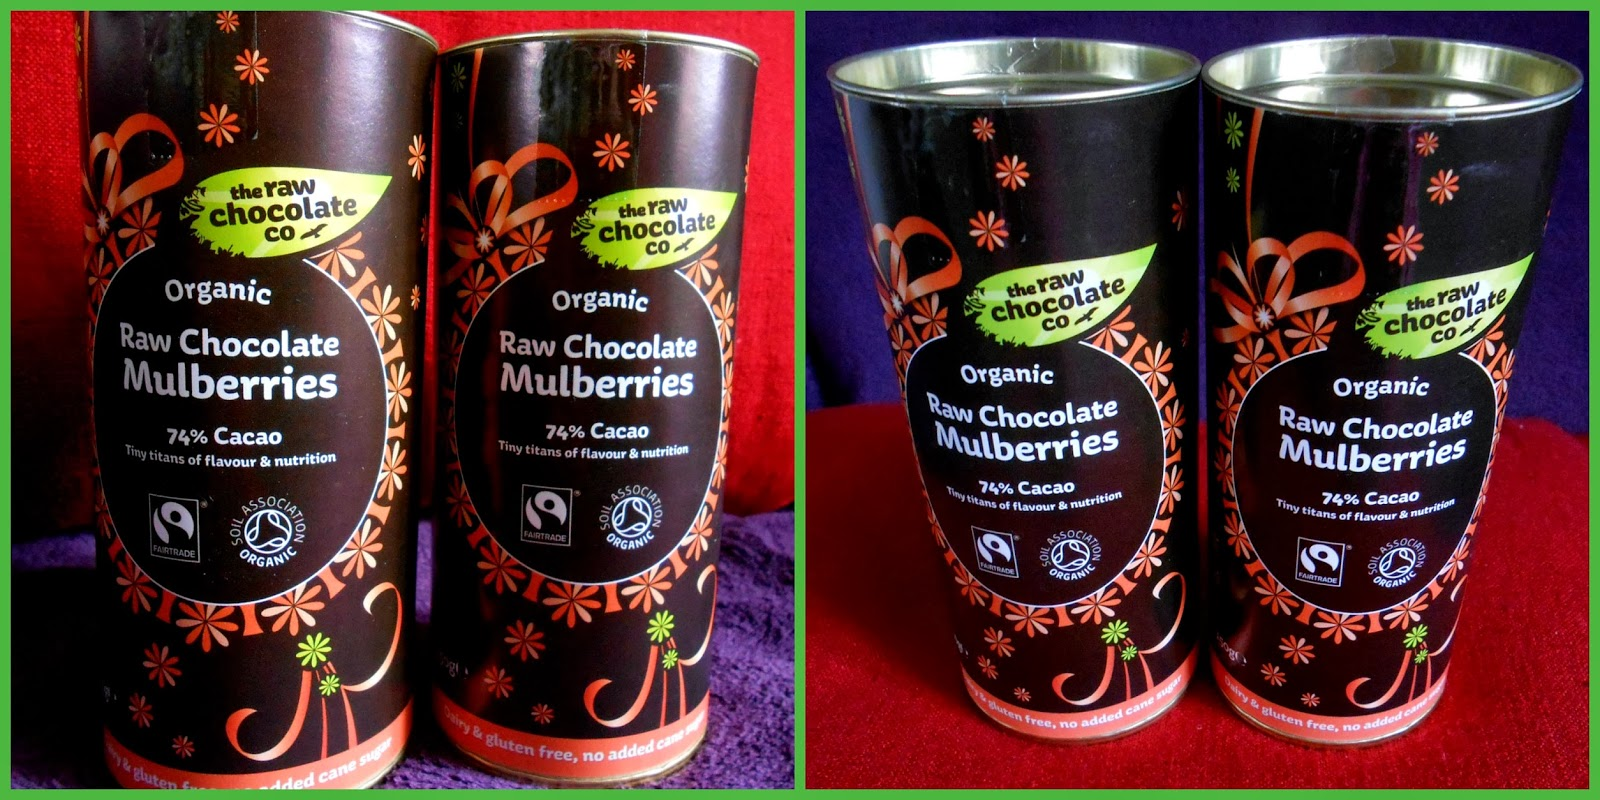 Organic Raw Chocolate Mulberries - Gift Pack - Perfect For Christmas - The Raw Chocolate Company